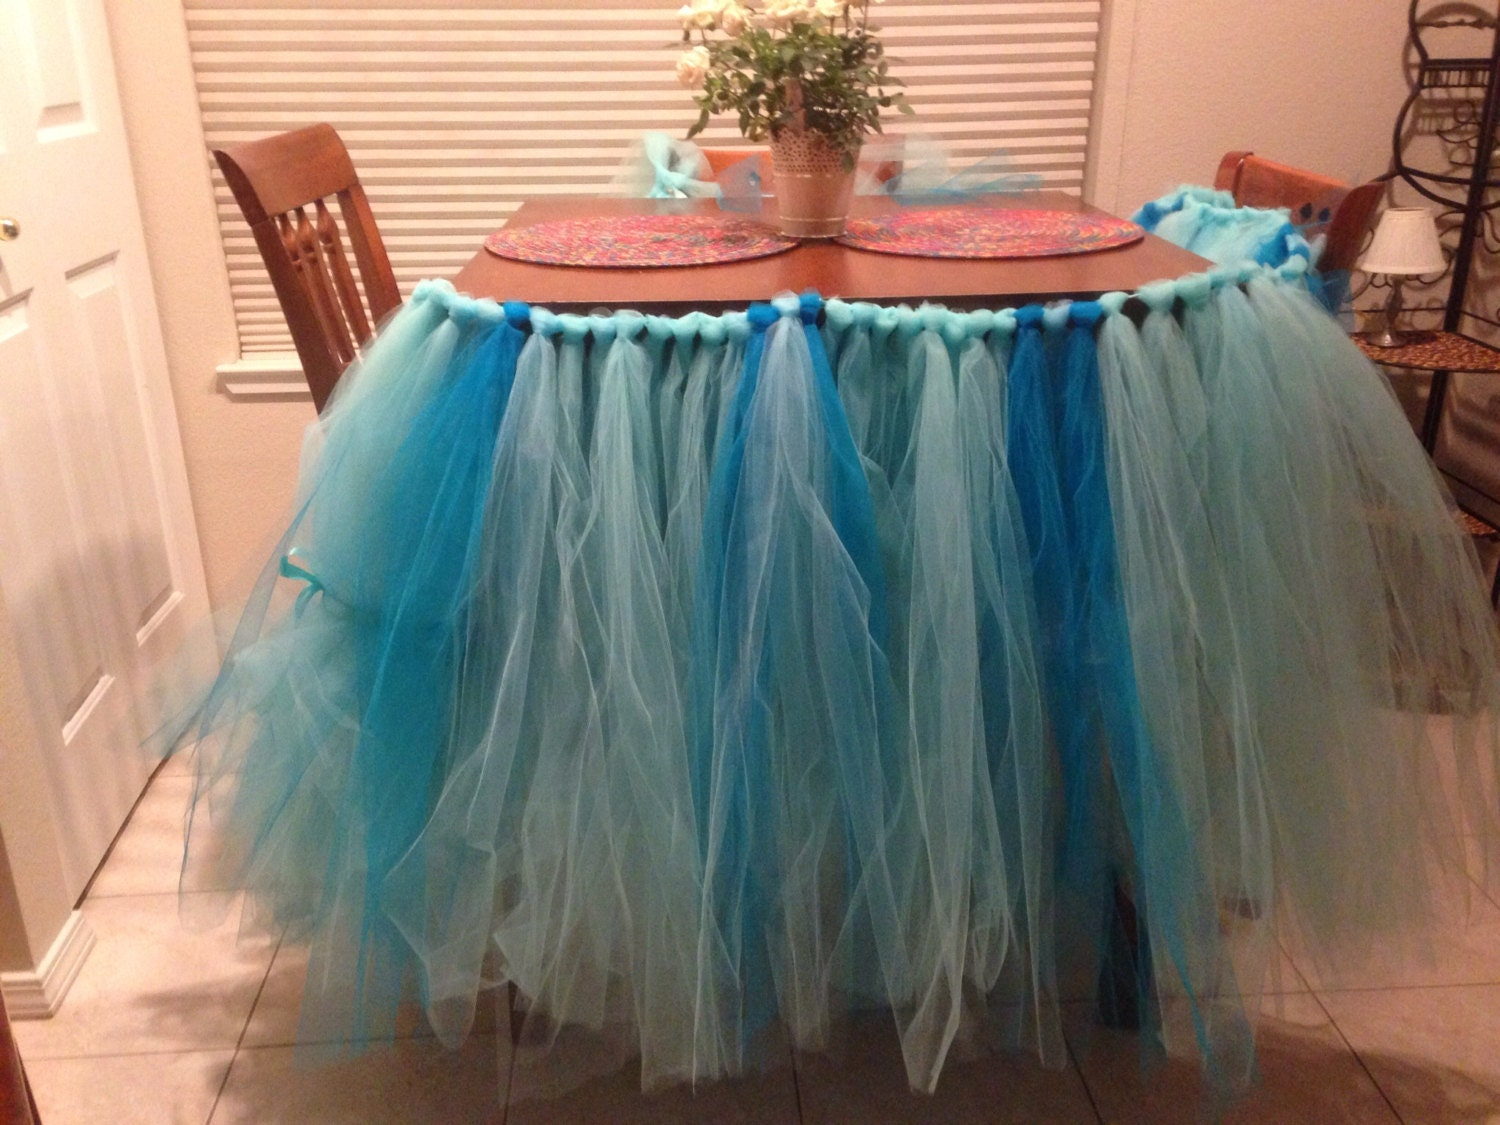 custom tulle tutu table skirt blue aqua and white